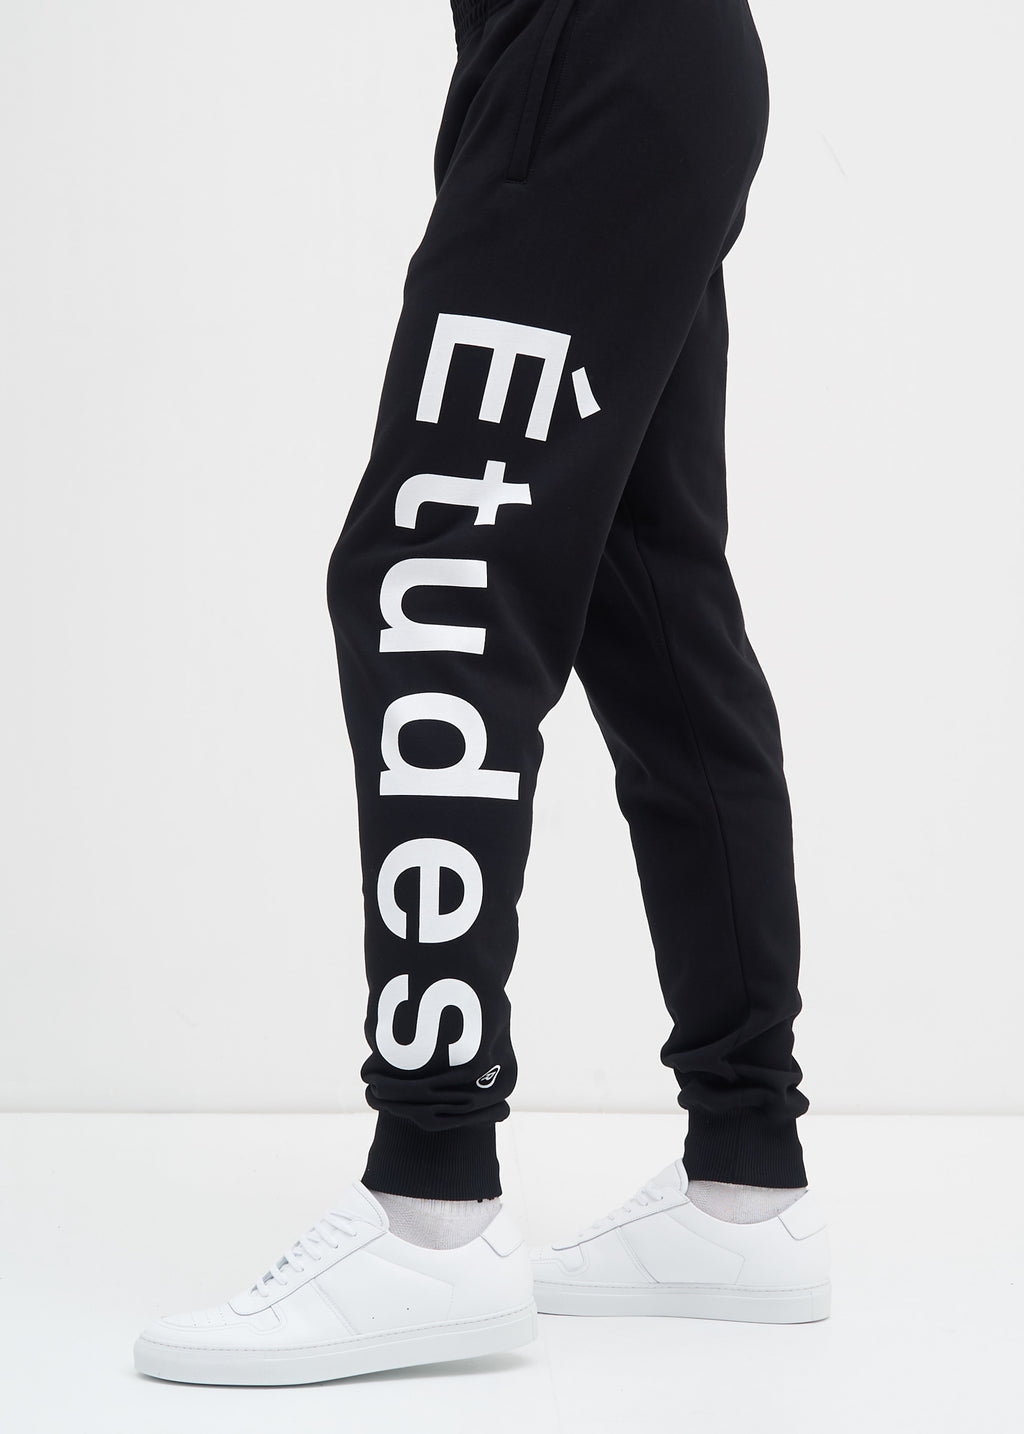 Black Tempera Etudes Sweatpants